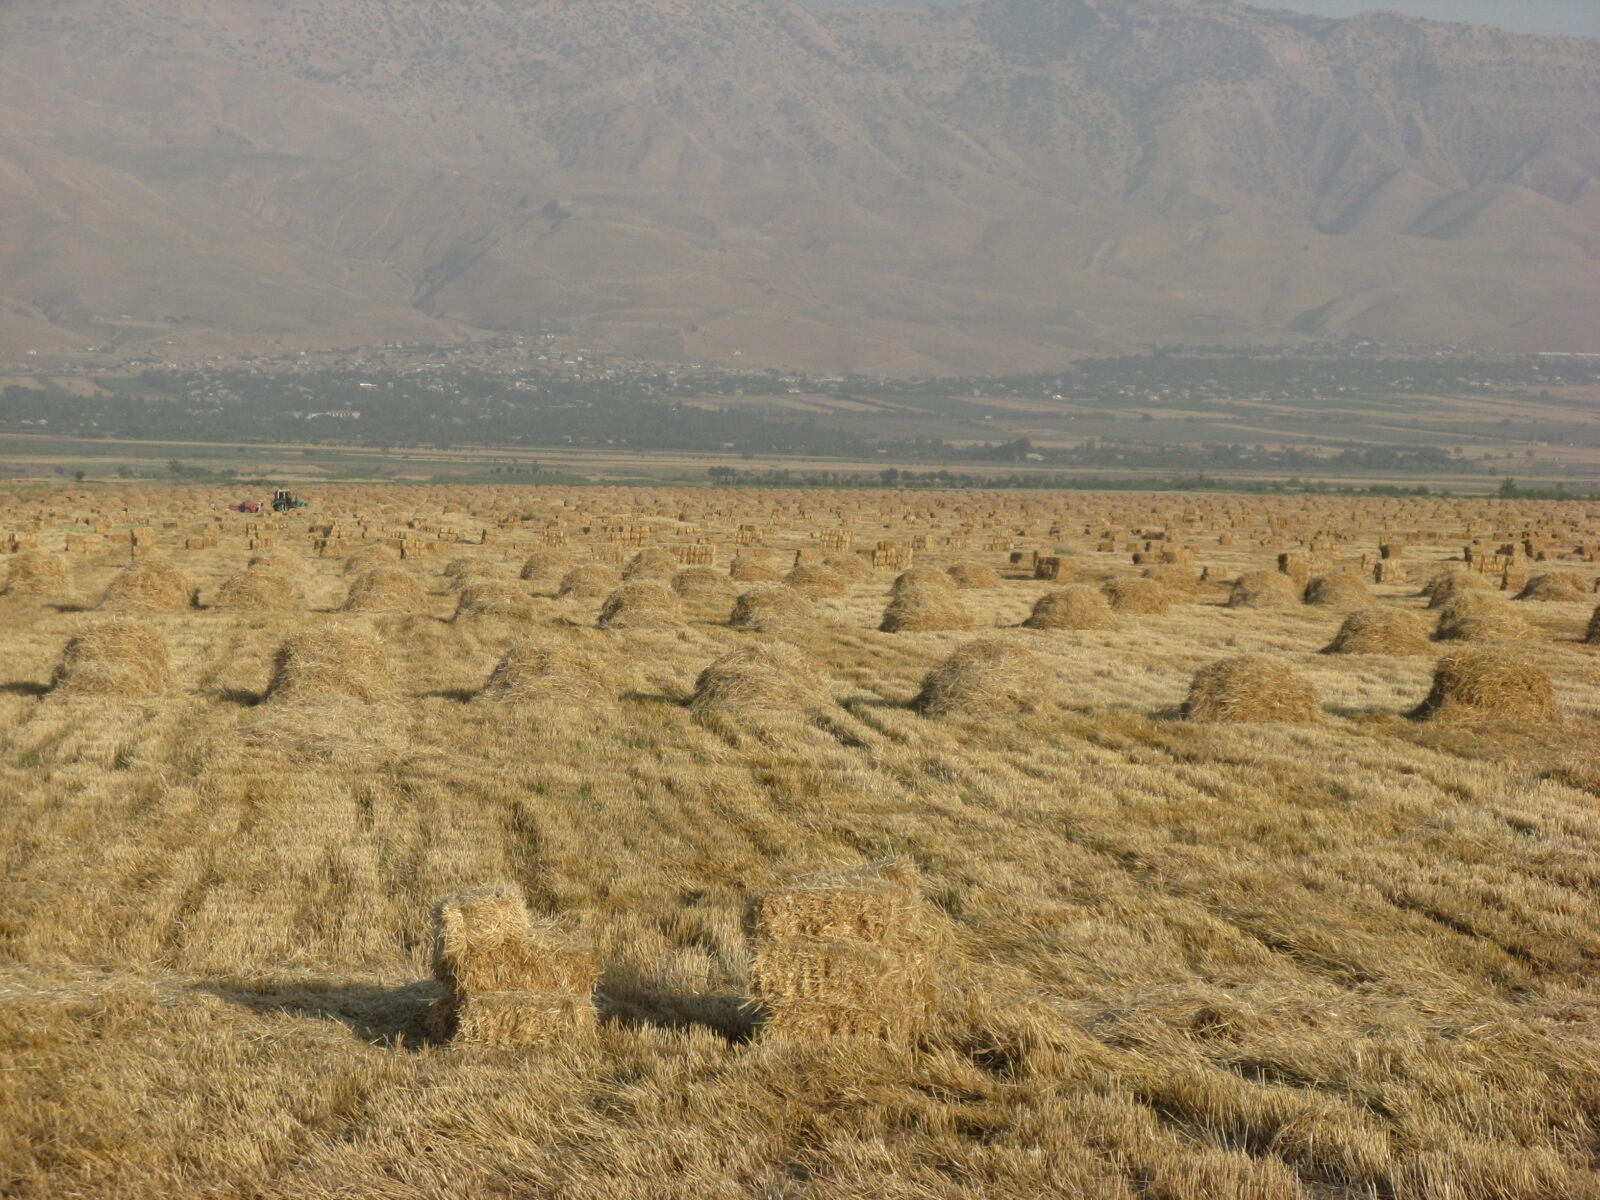 Agriculture in Central Asia: Unlocking the Potential  An